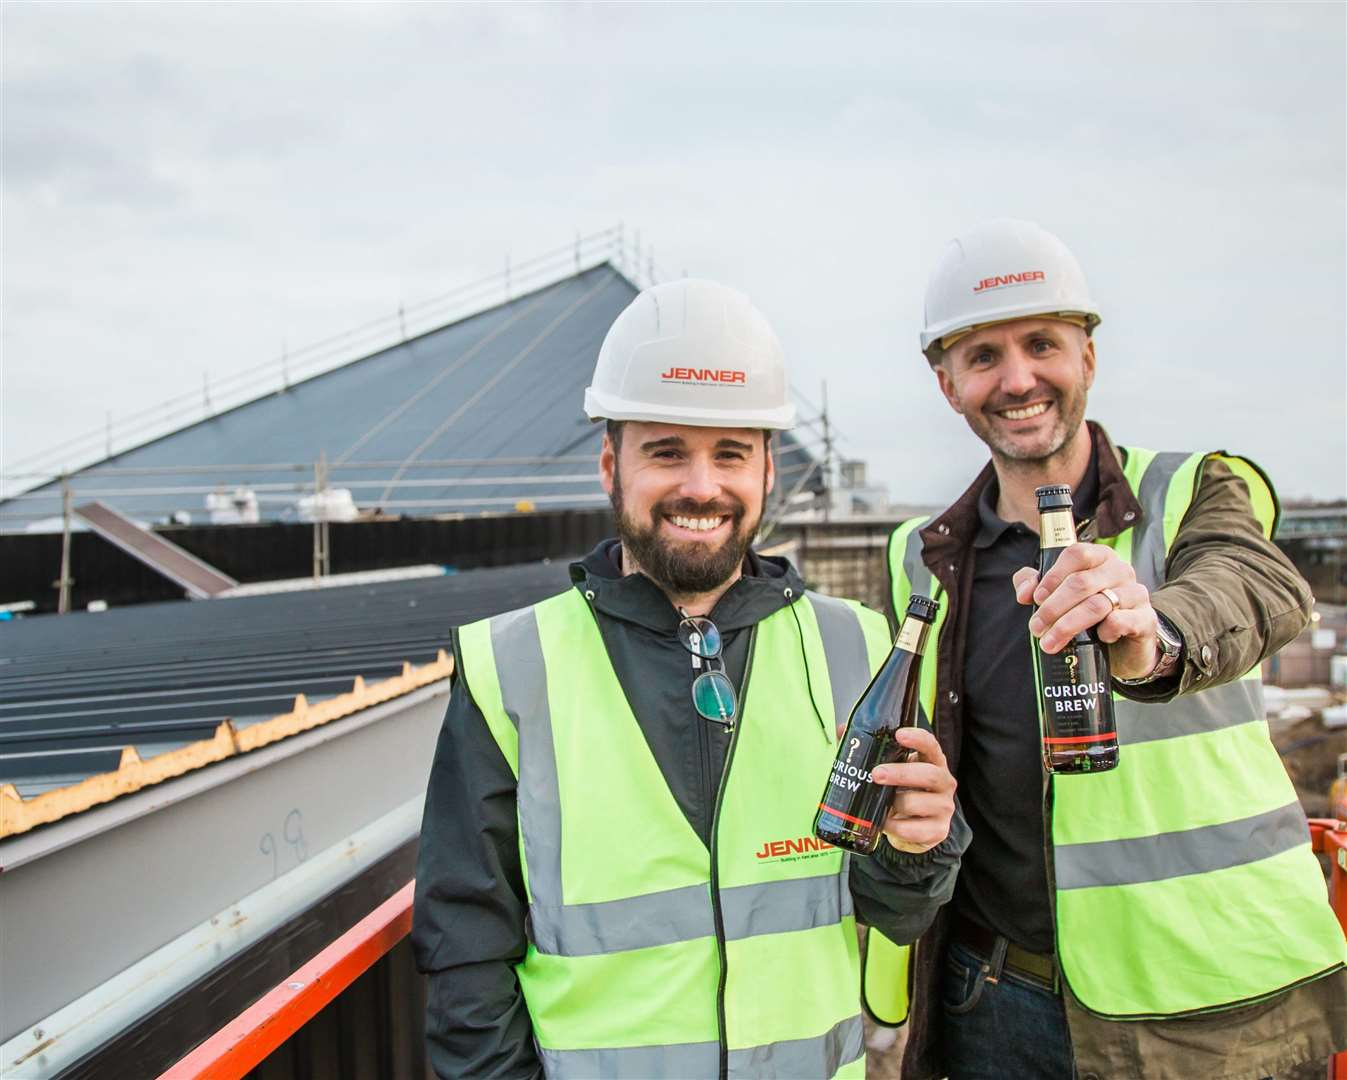 Curious Brewery's head brewer Matthew Anderson with Brewery MD Gareth Bath.